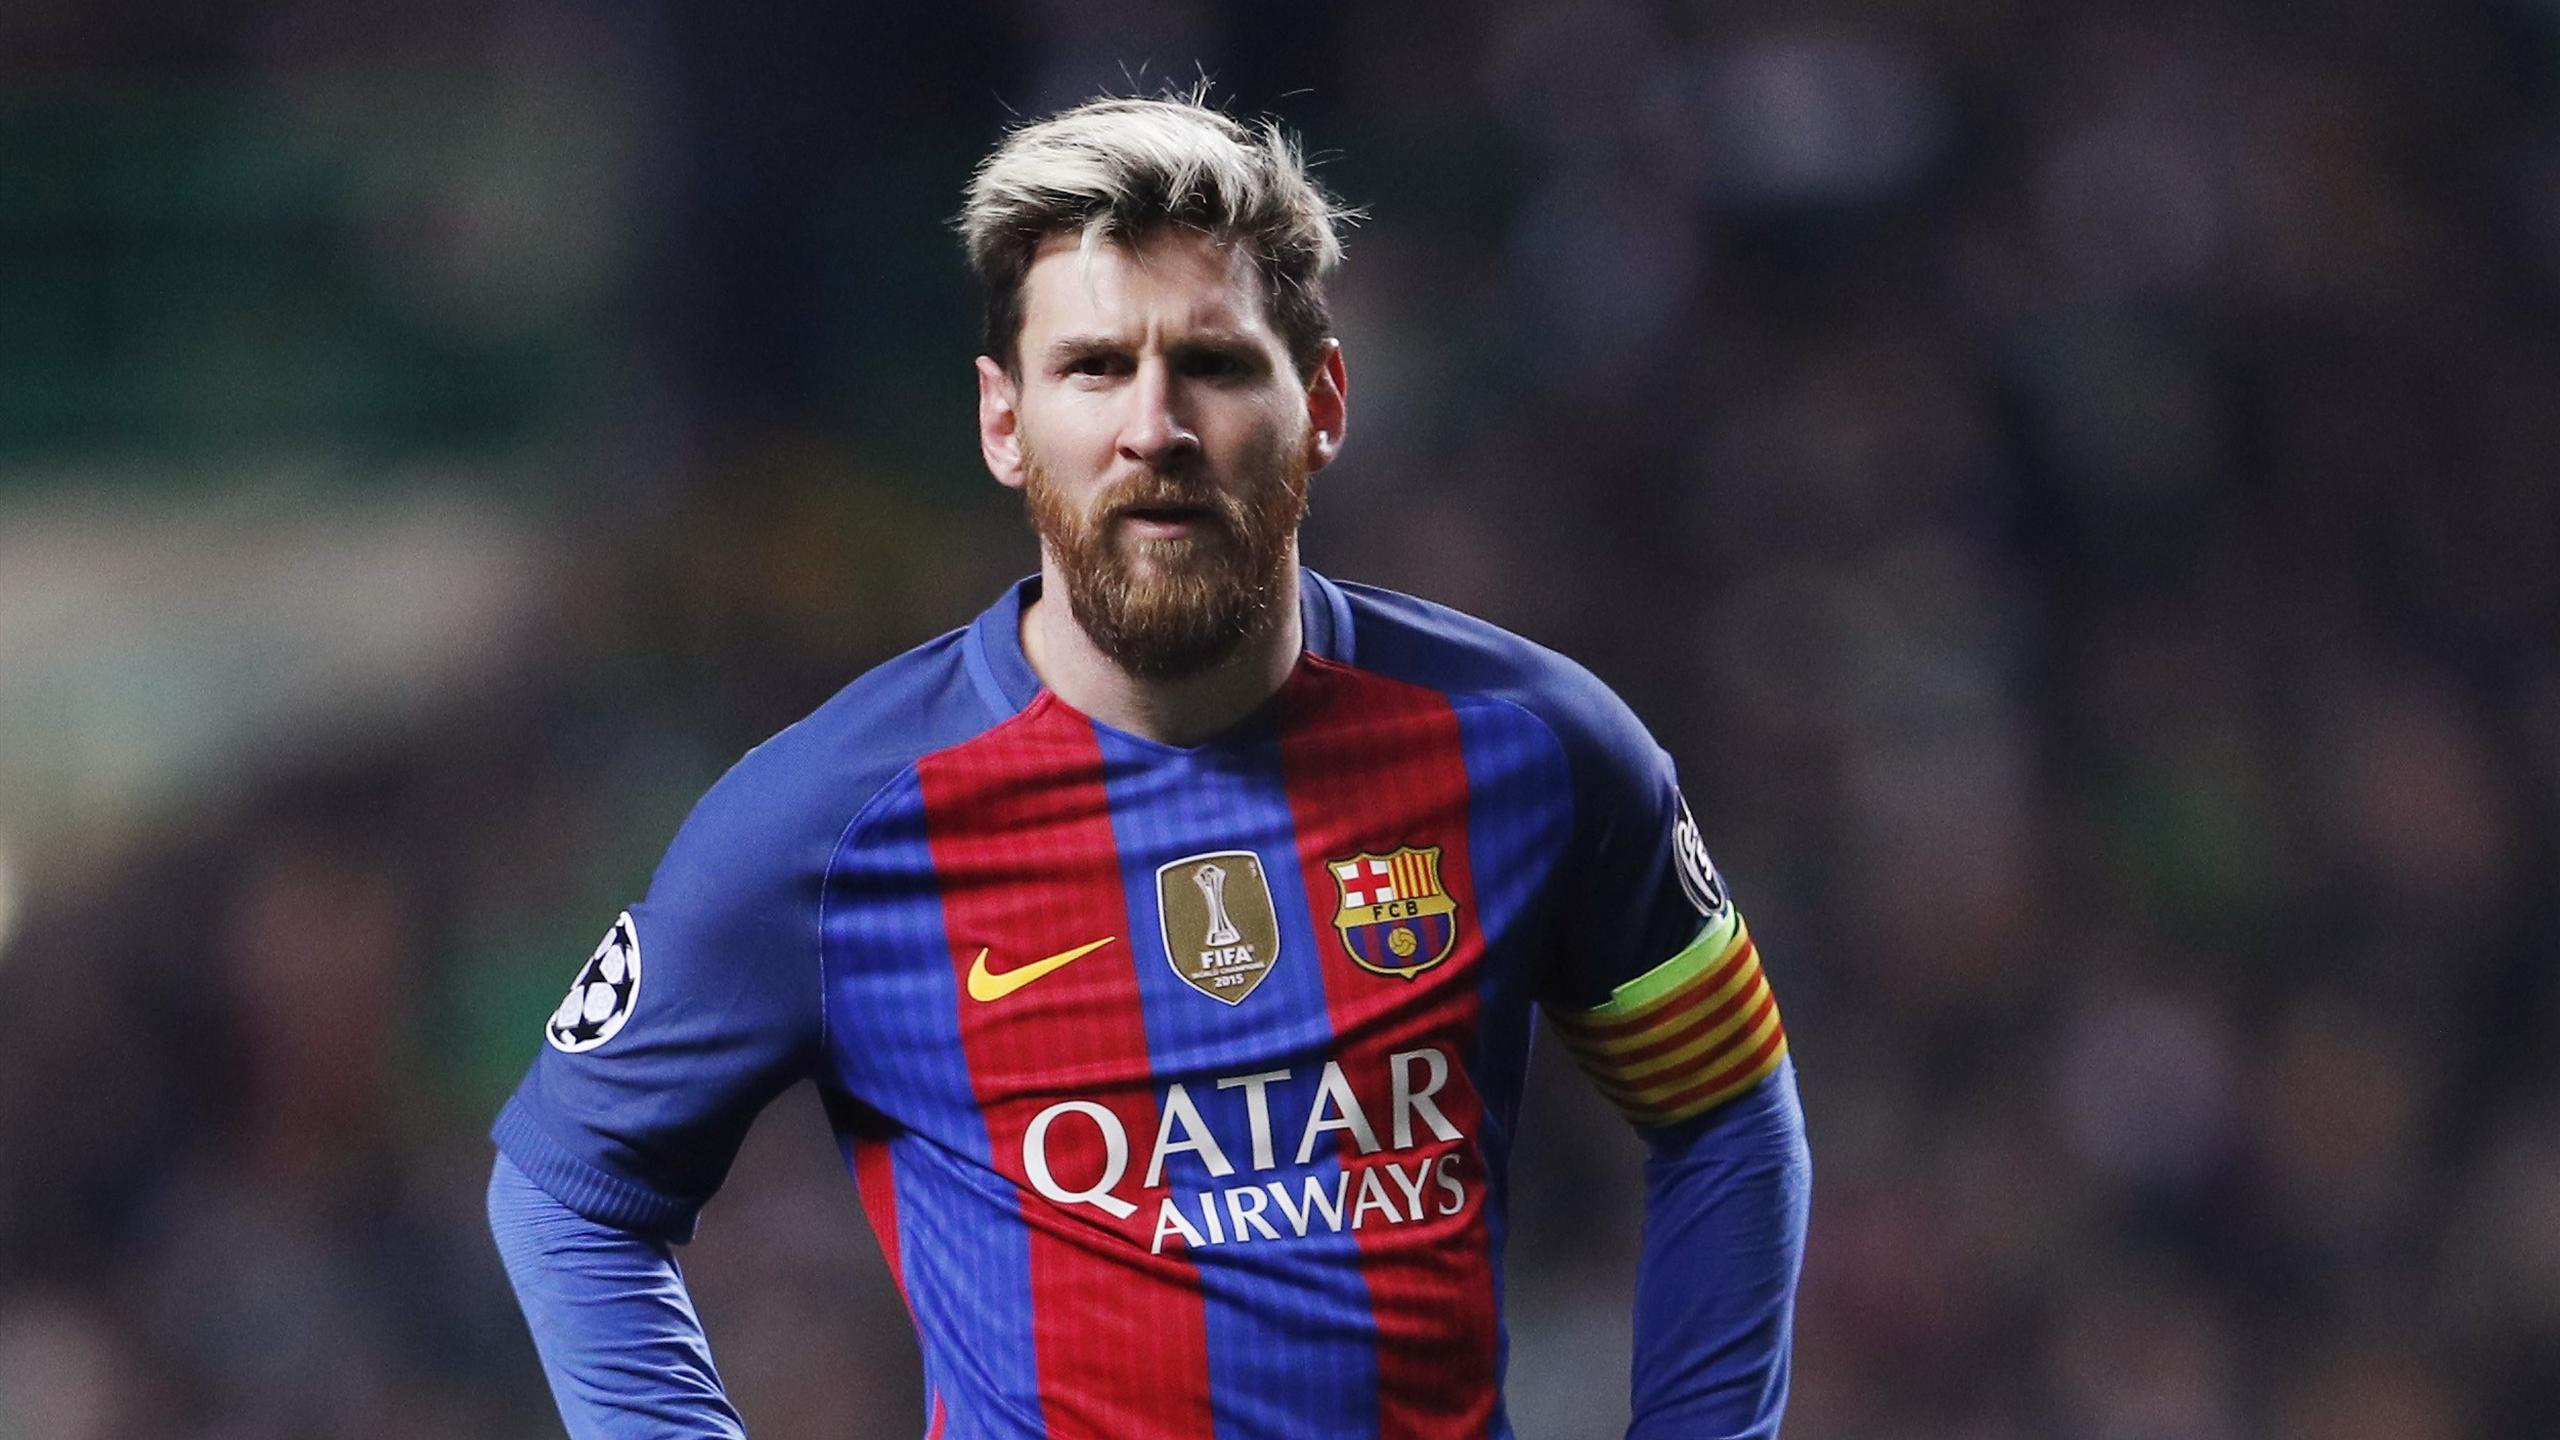 Barcelona's Lionel Messi stands with his hands on his hips